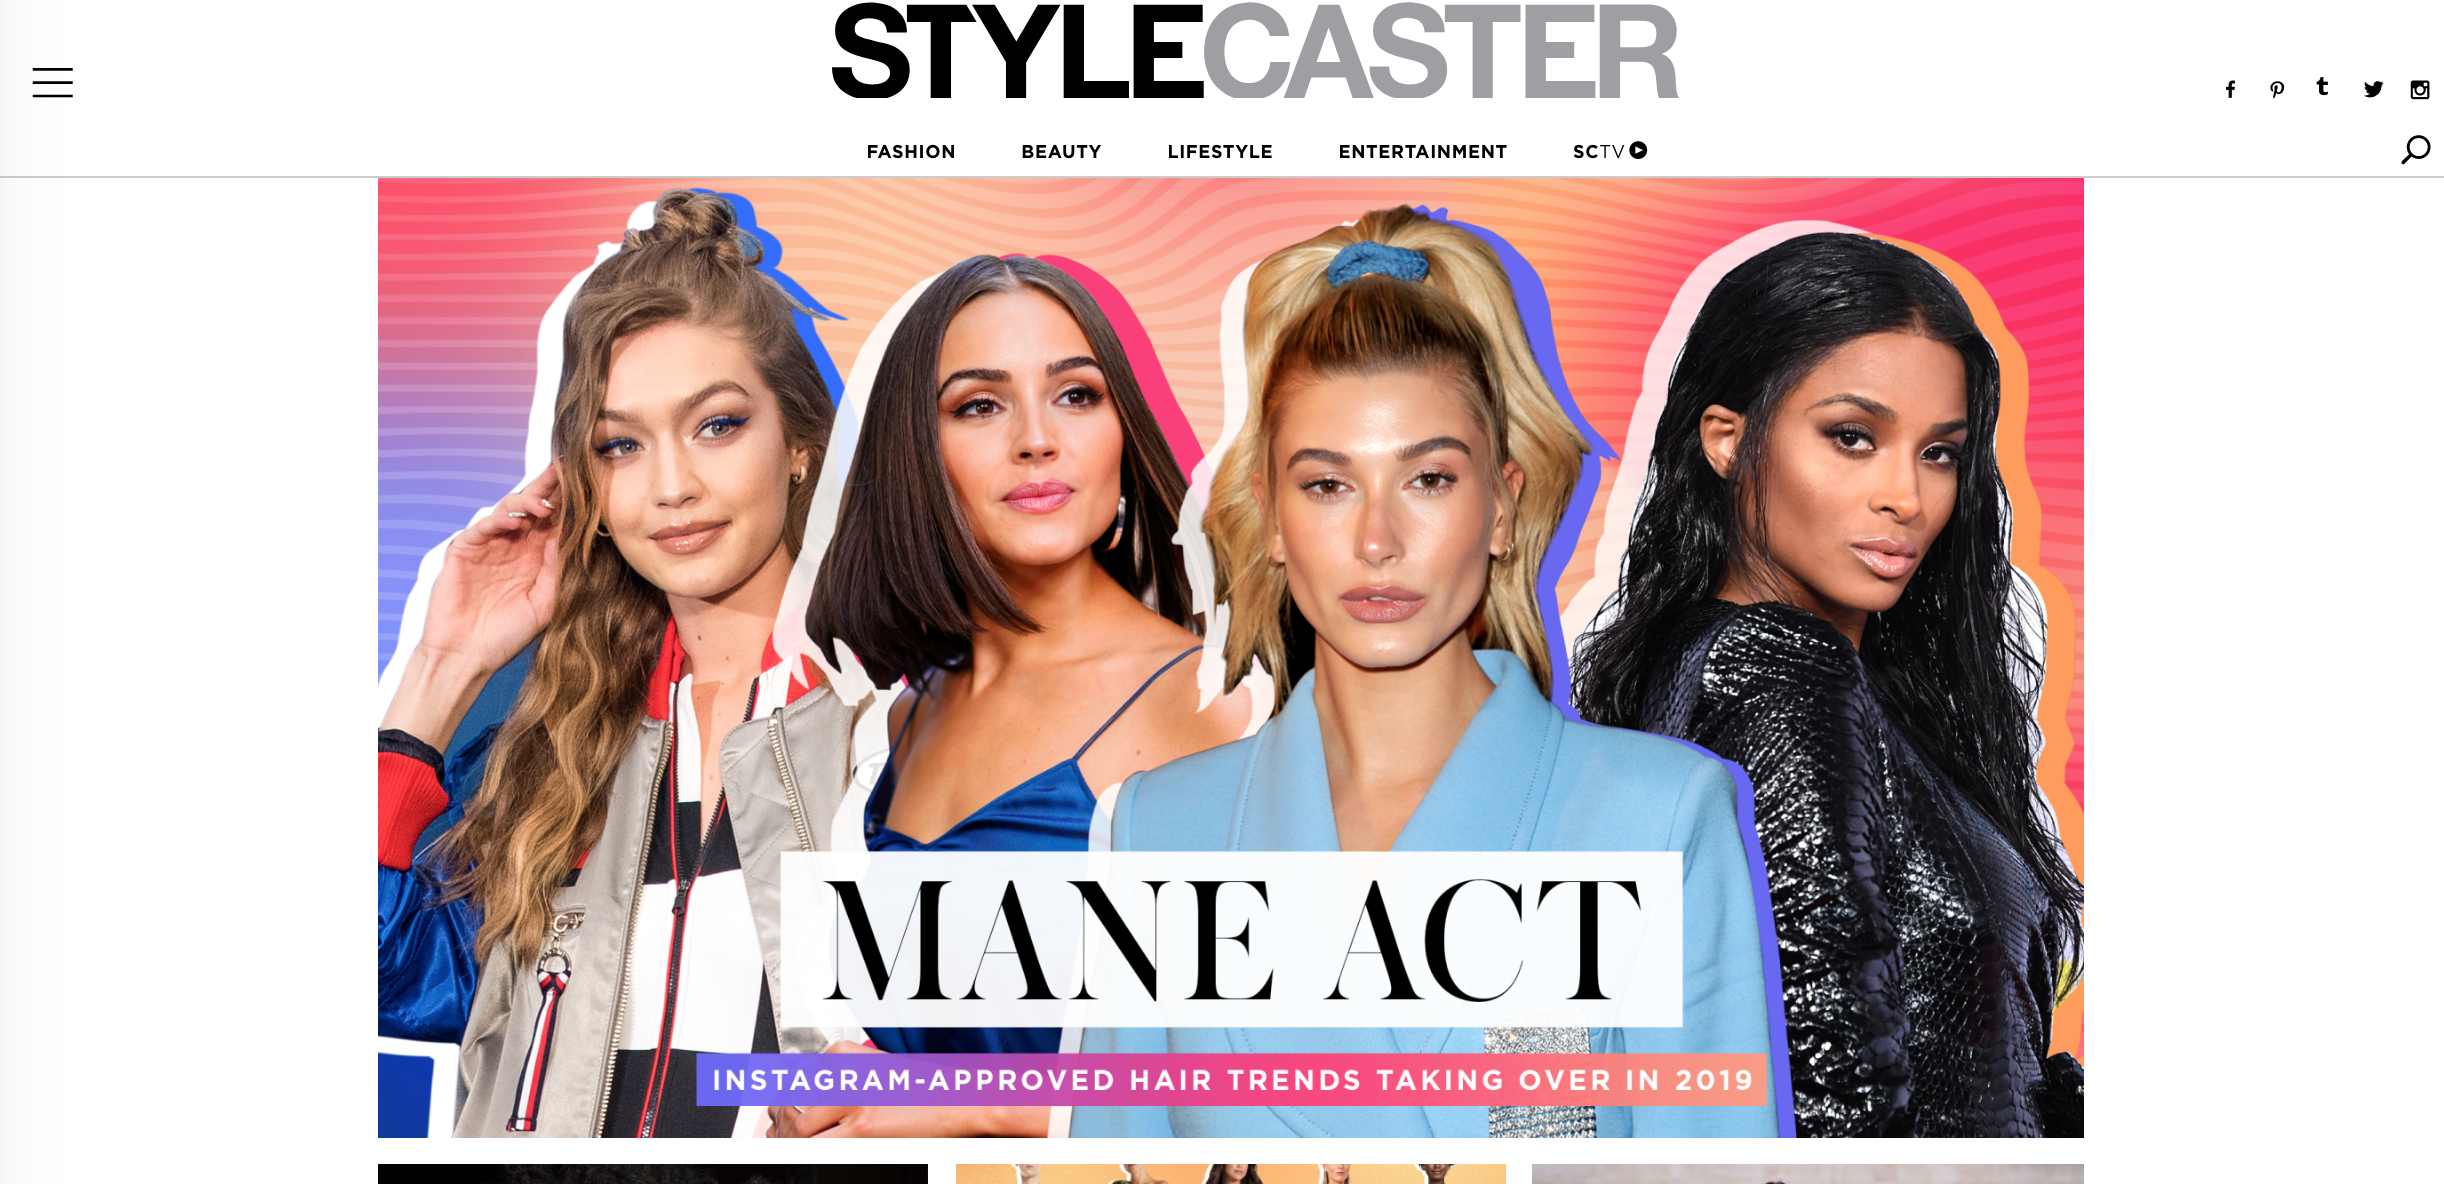 stylecaster-homepage